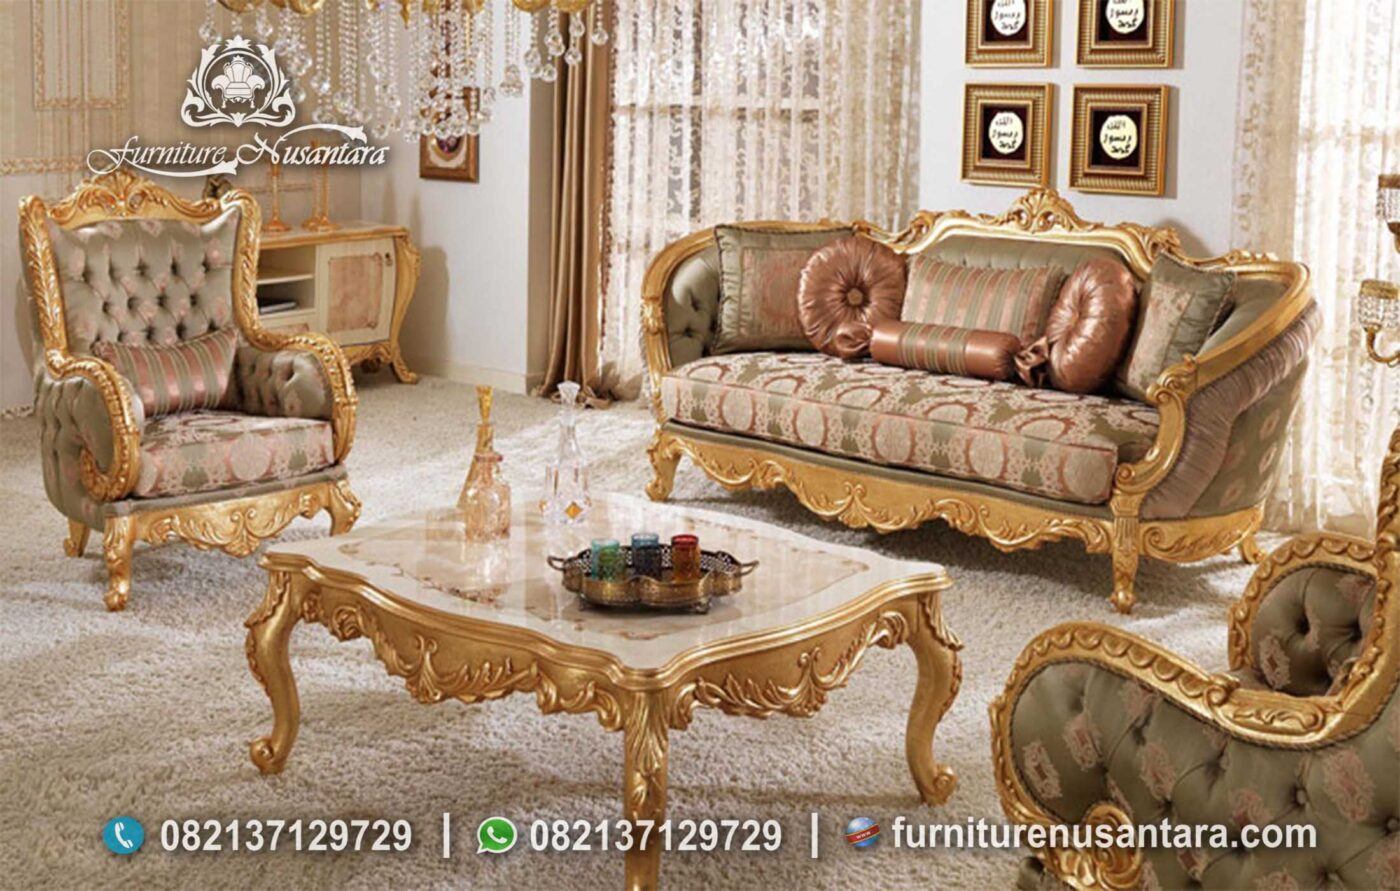 Sofa Klasik Luxury Gold Colour ST-57, Furniture Nusantara